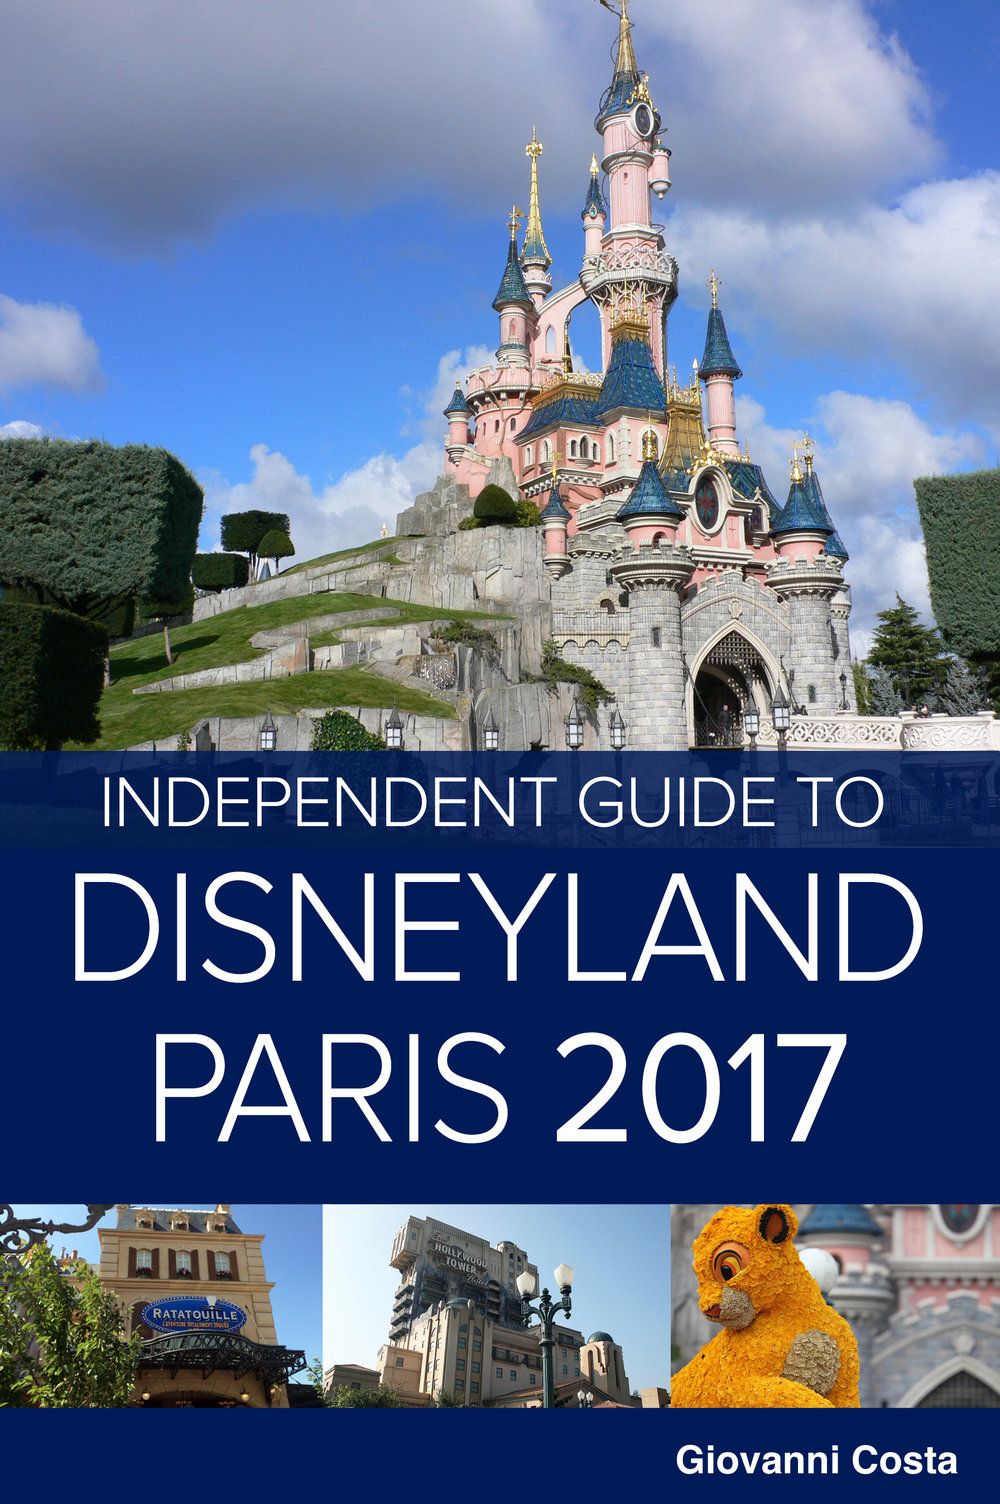 IndependentGuideDisneylandParis2017.jpg